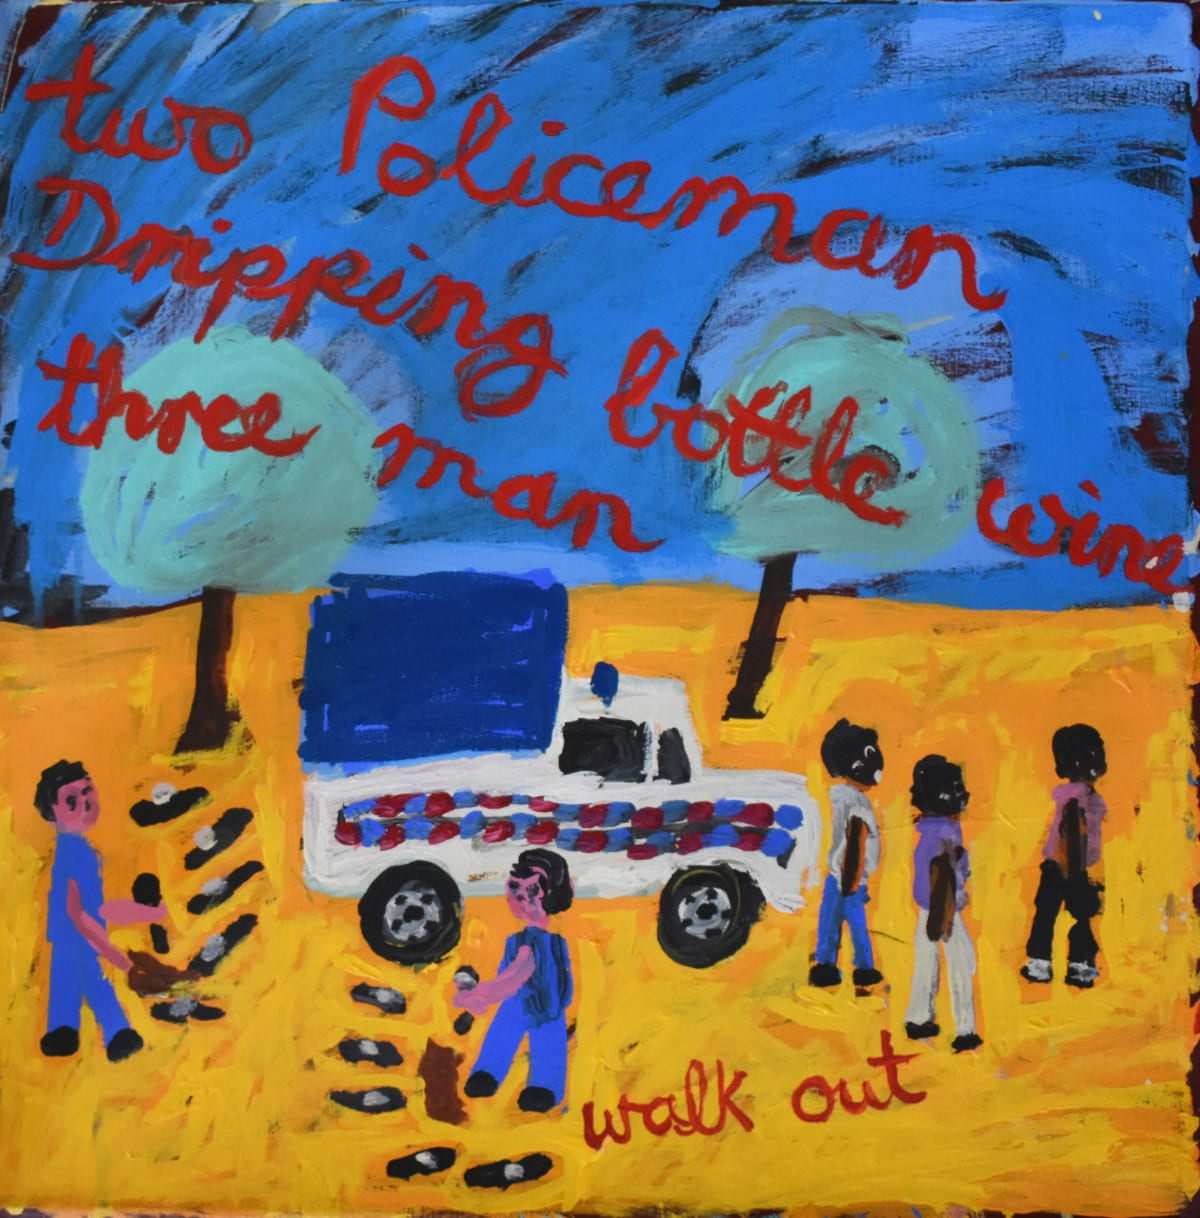 Sally M Mulda Two Policeman dripping bottle of wine, Three man walk out, 2019 Acrylic on linen 56 x 56 cm